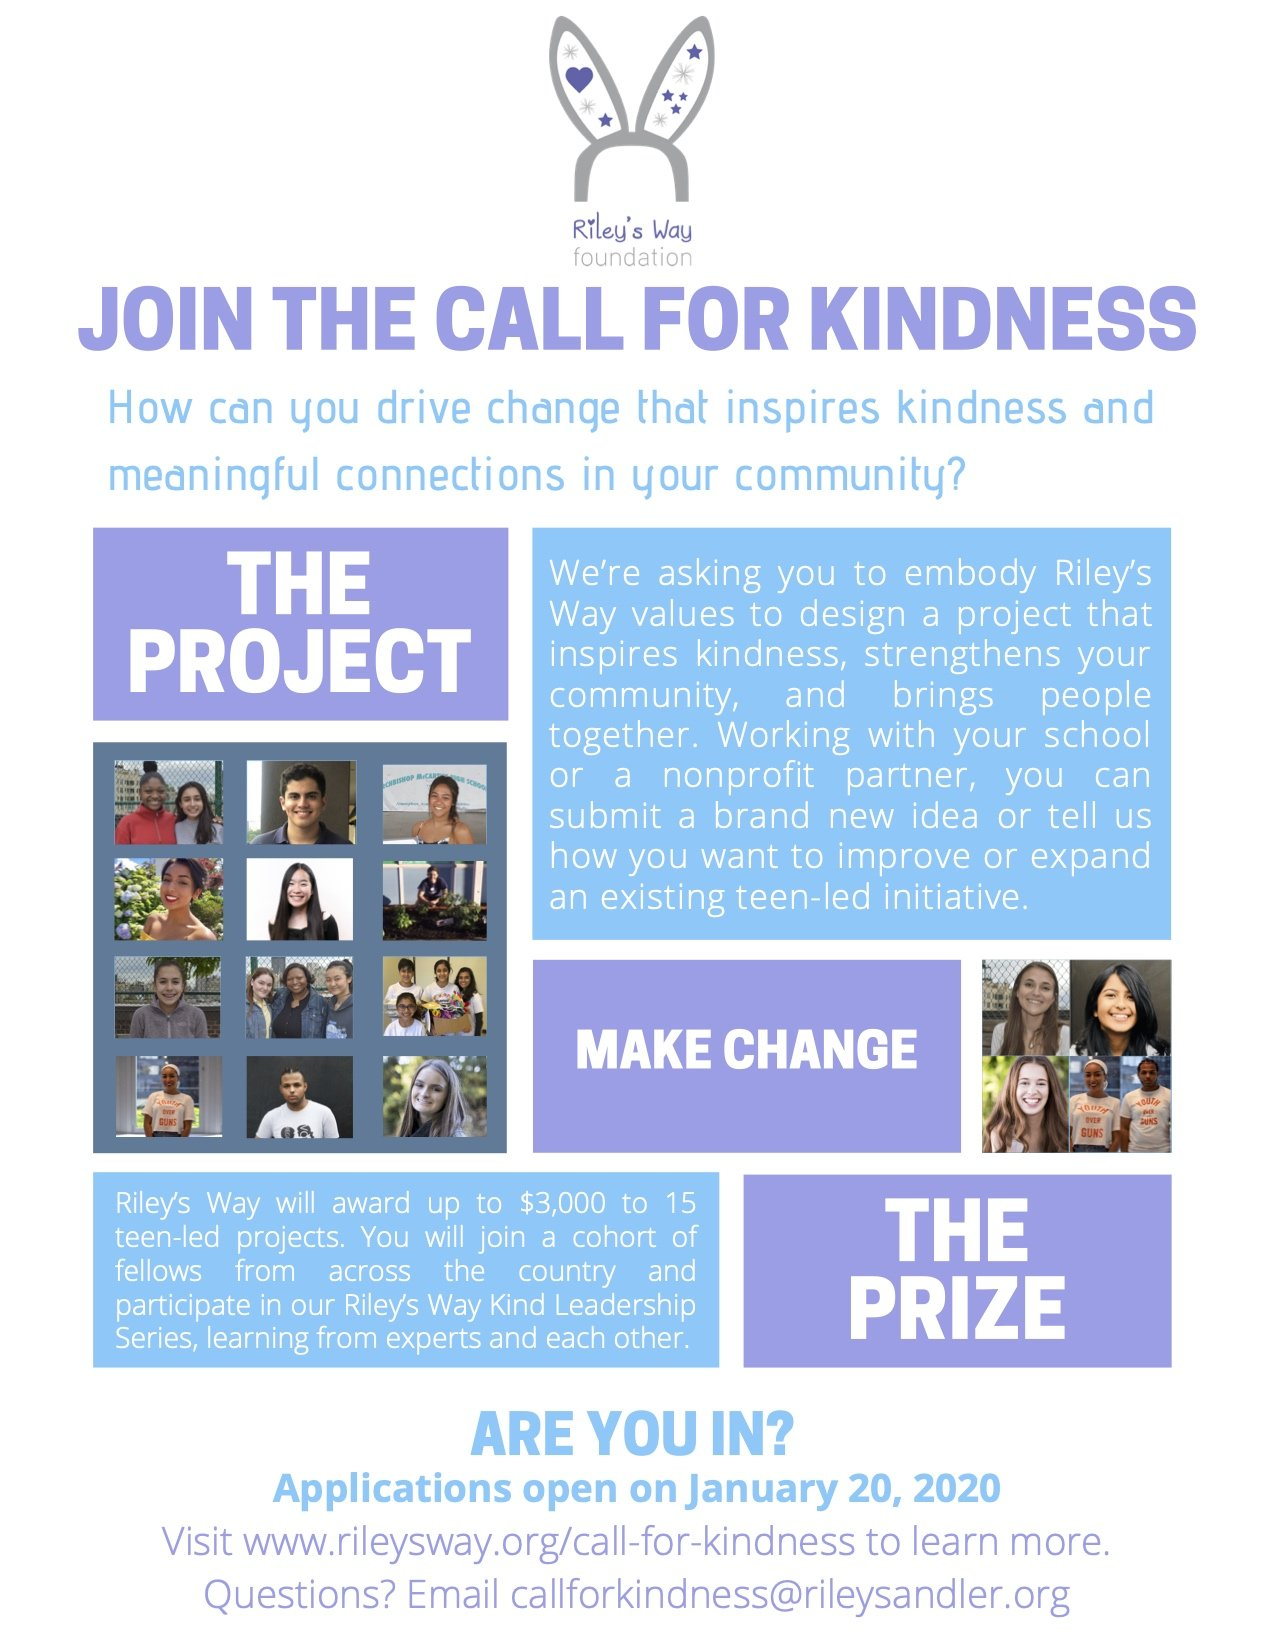 Calling All Teens Who Want to Make a Difference: Riley's Way Foundation Announces the Call for Kindness